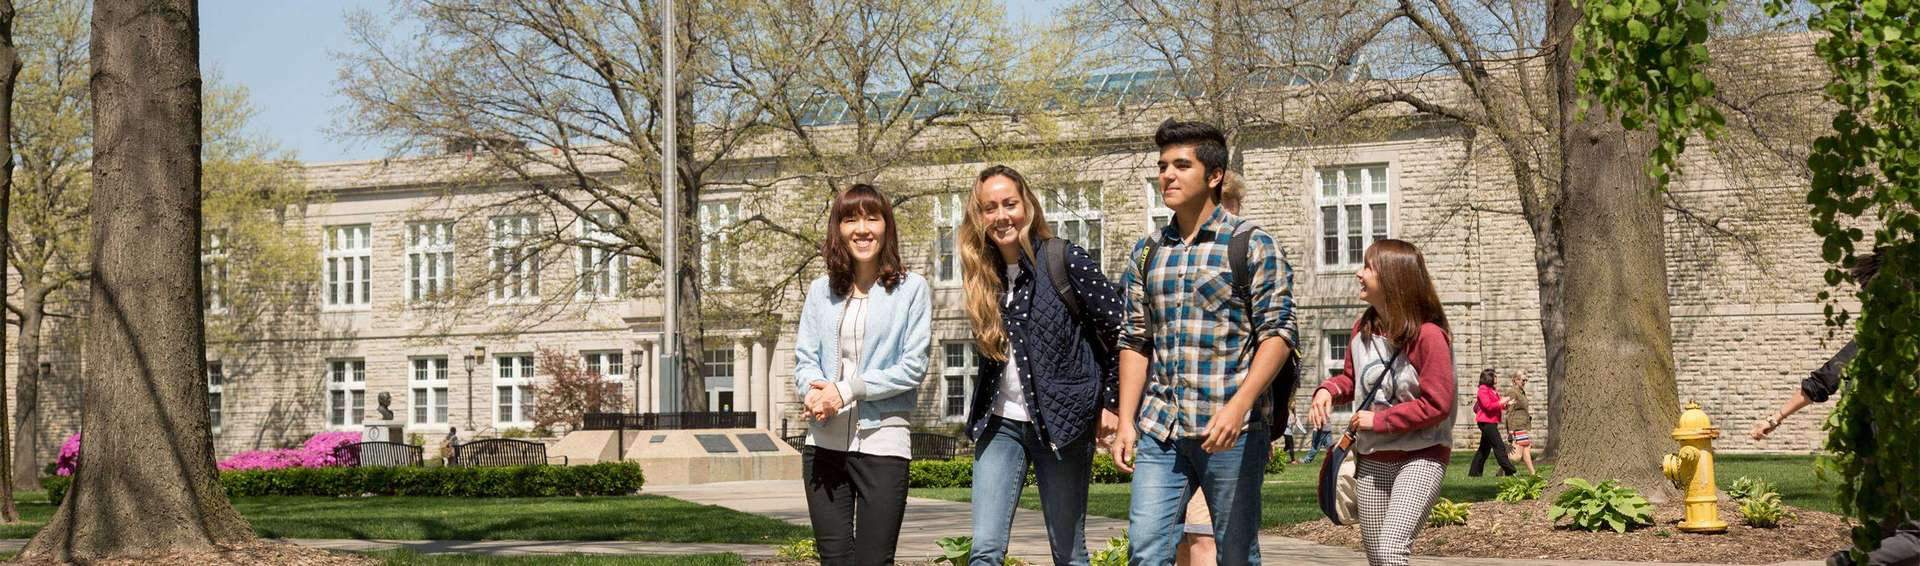 UCM students walking in quadrangle